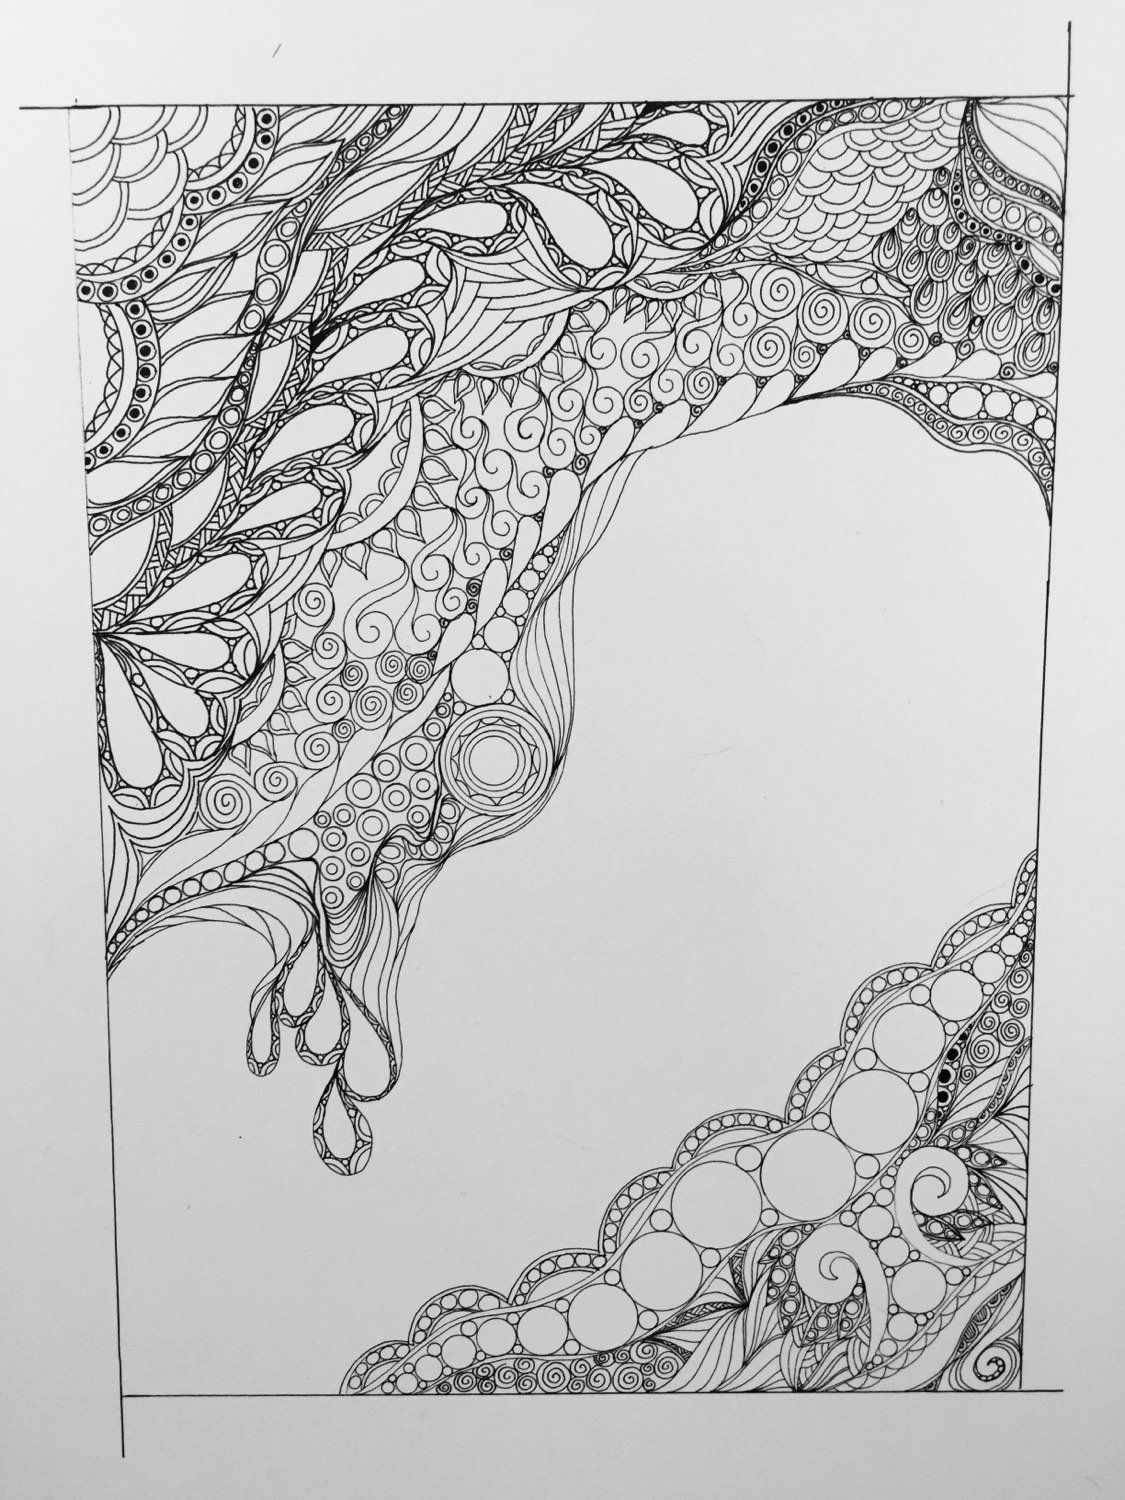 Zentangle abstractzentangle artblack and white abstractink drawingwall artwall decor